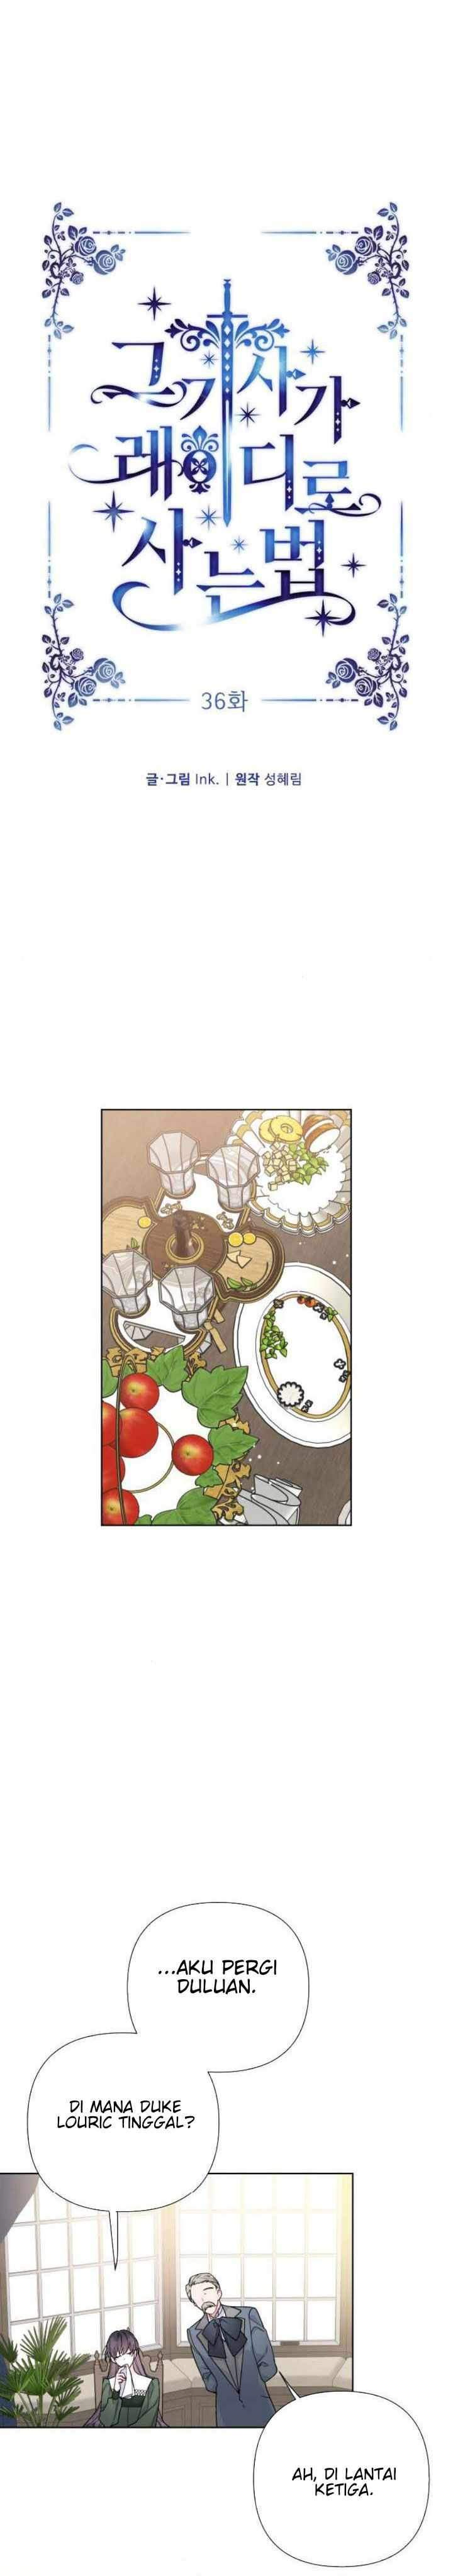 The Way That Knight Lives As a Lady Chapter 36